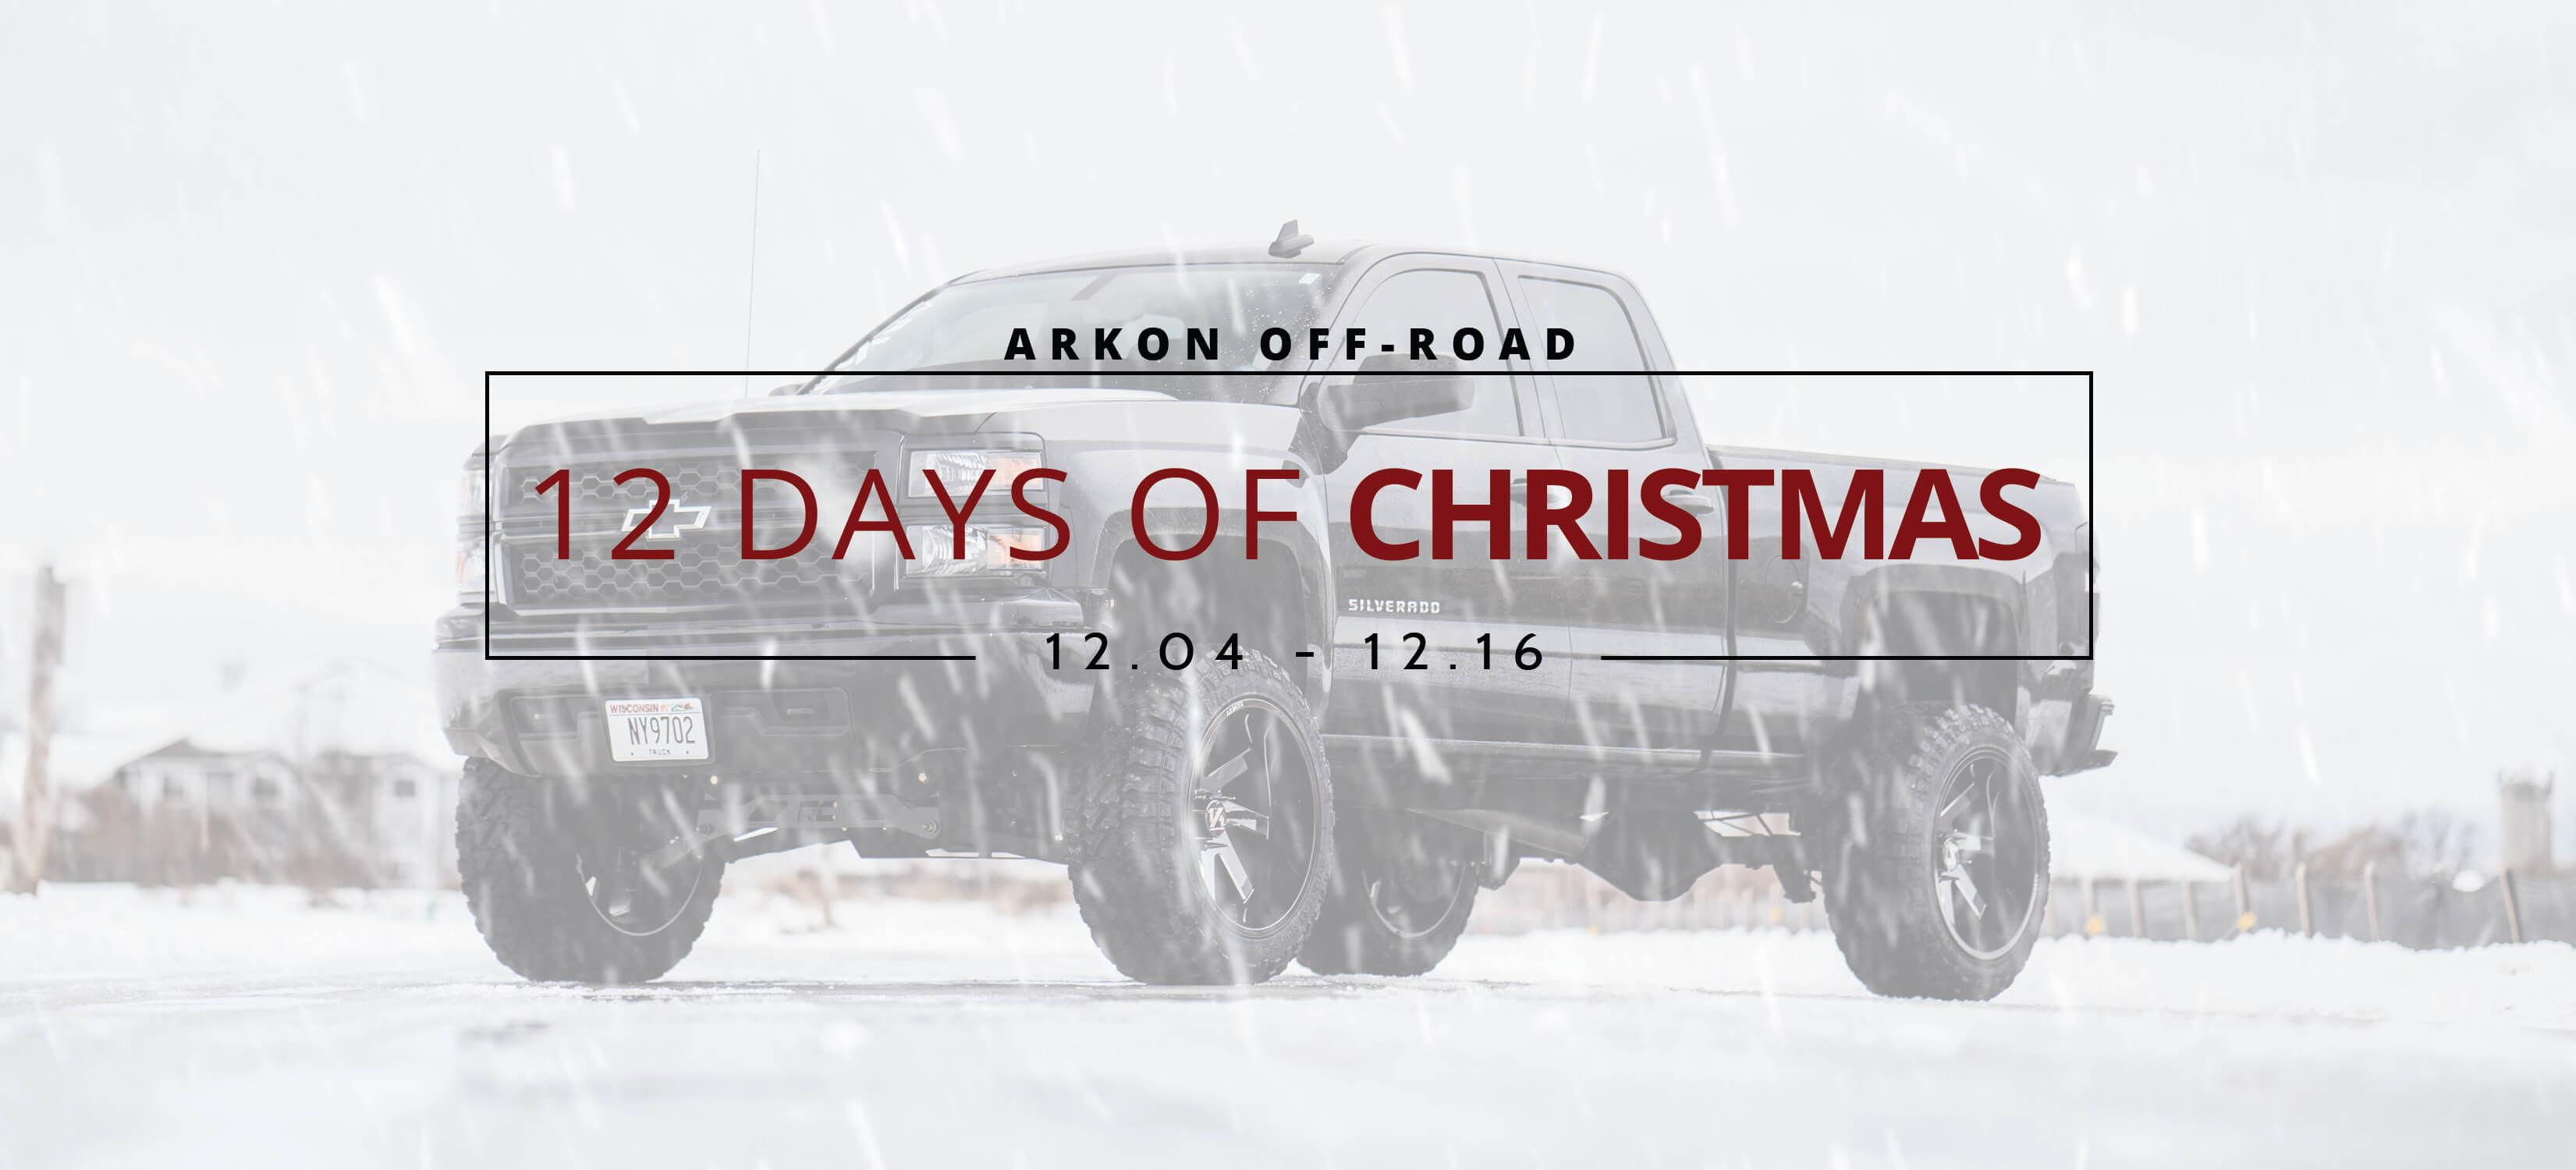 ARKON OFF-ROAD Christmas Banner